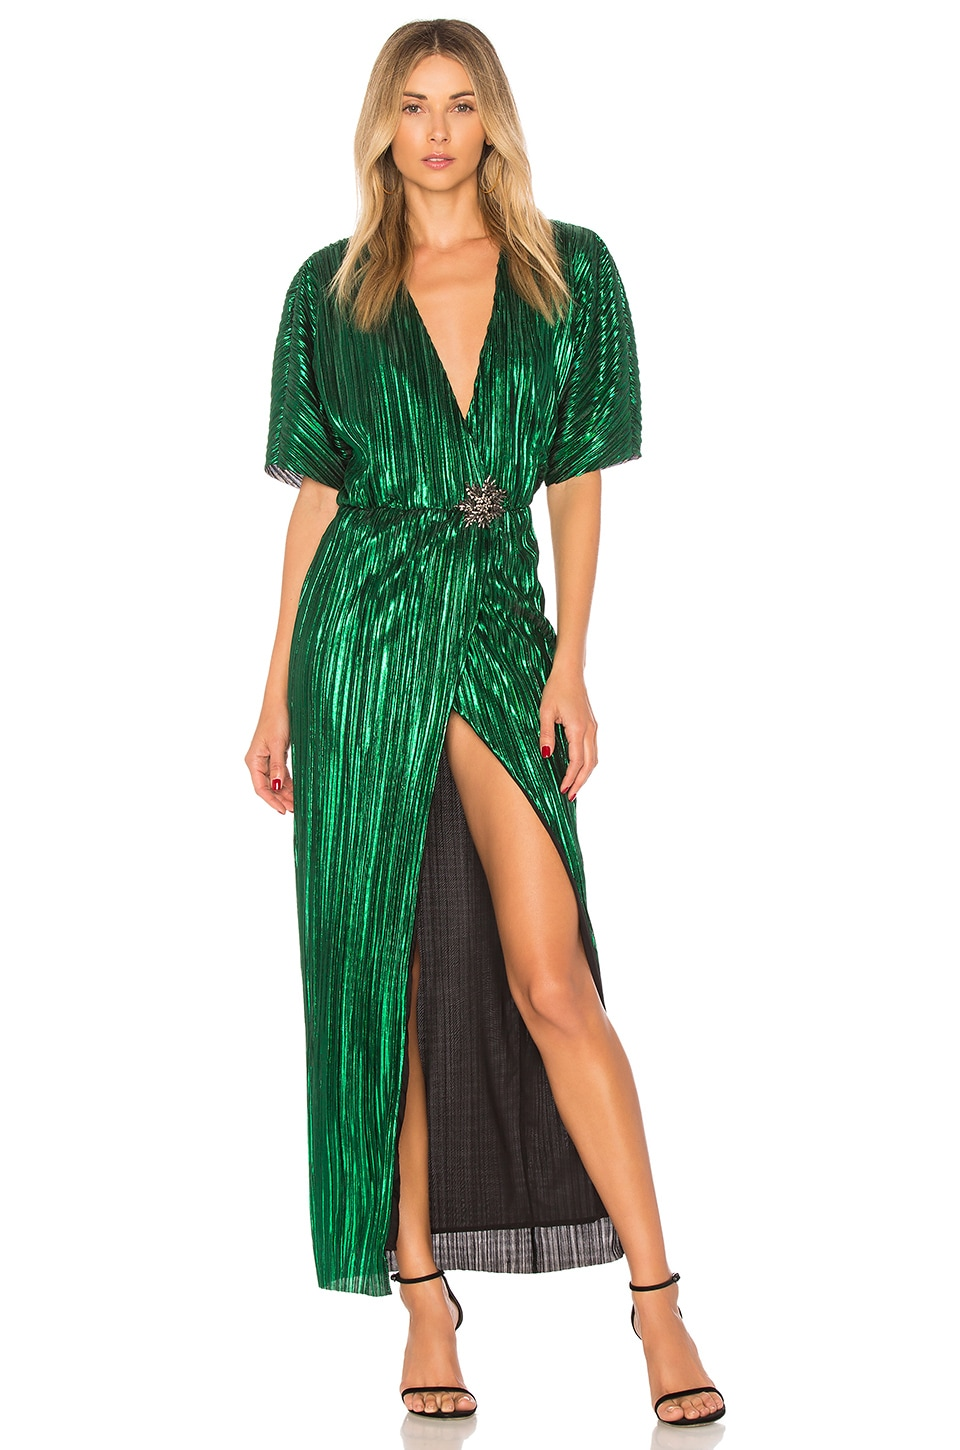 House of Harlow 1960 x REVOLVE Sabrina Dress in Emerald